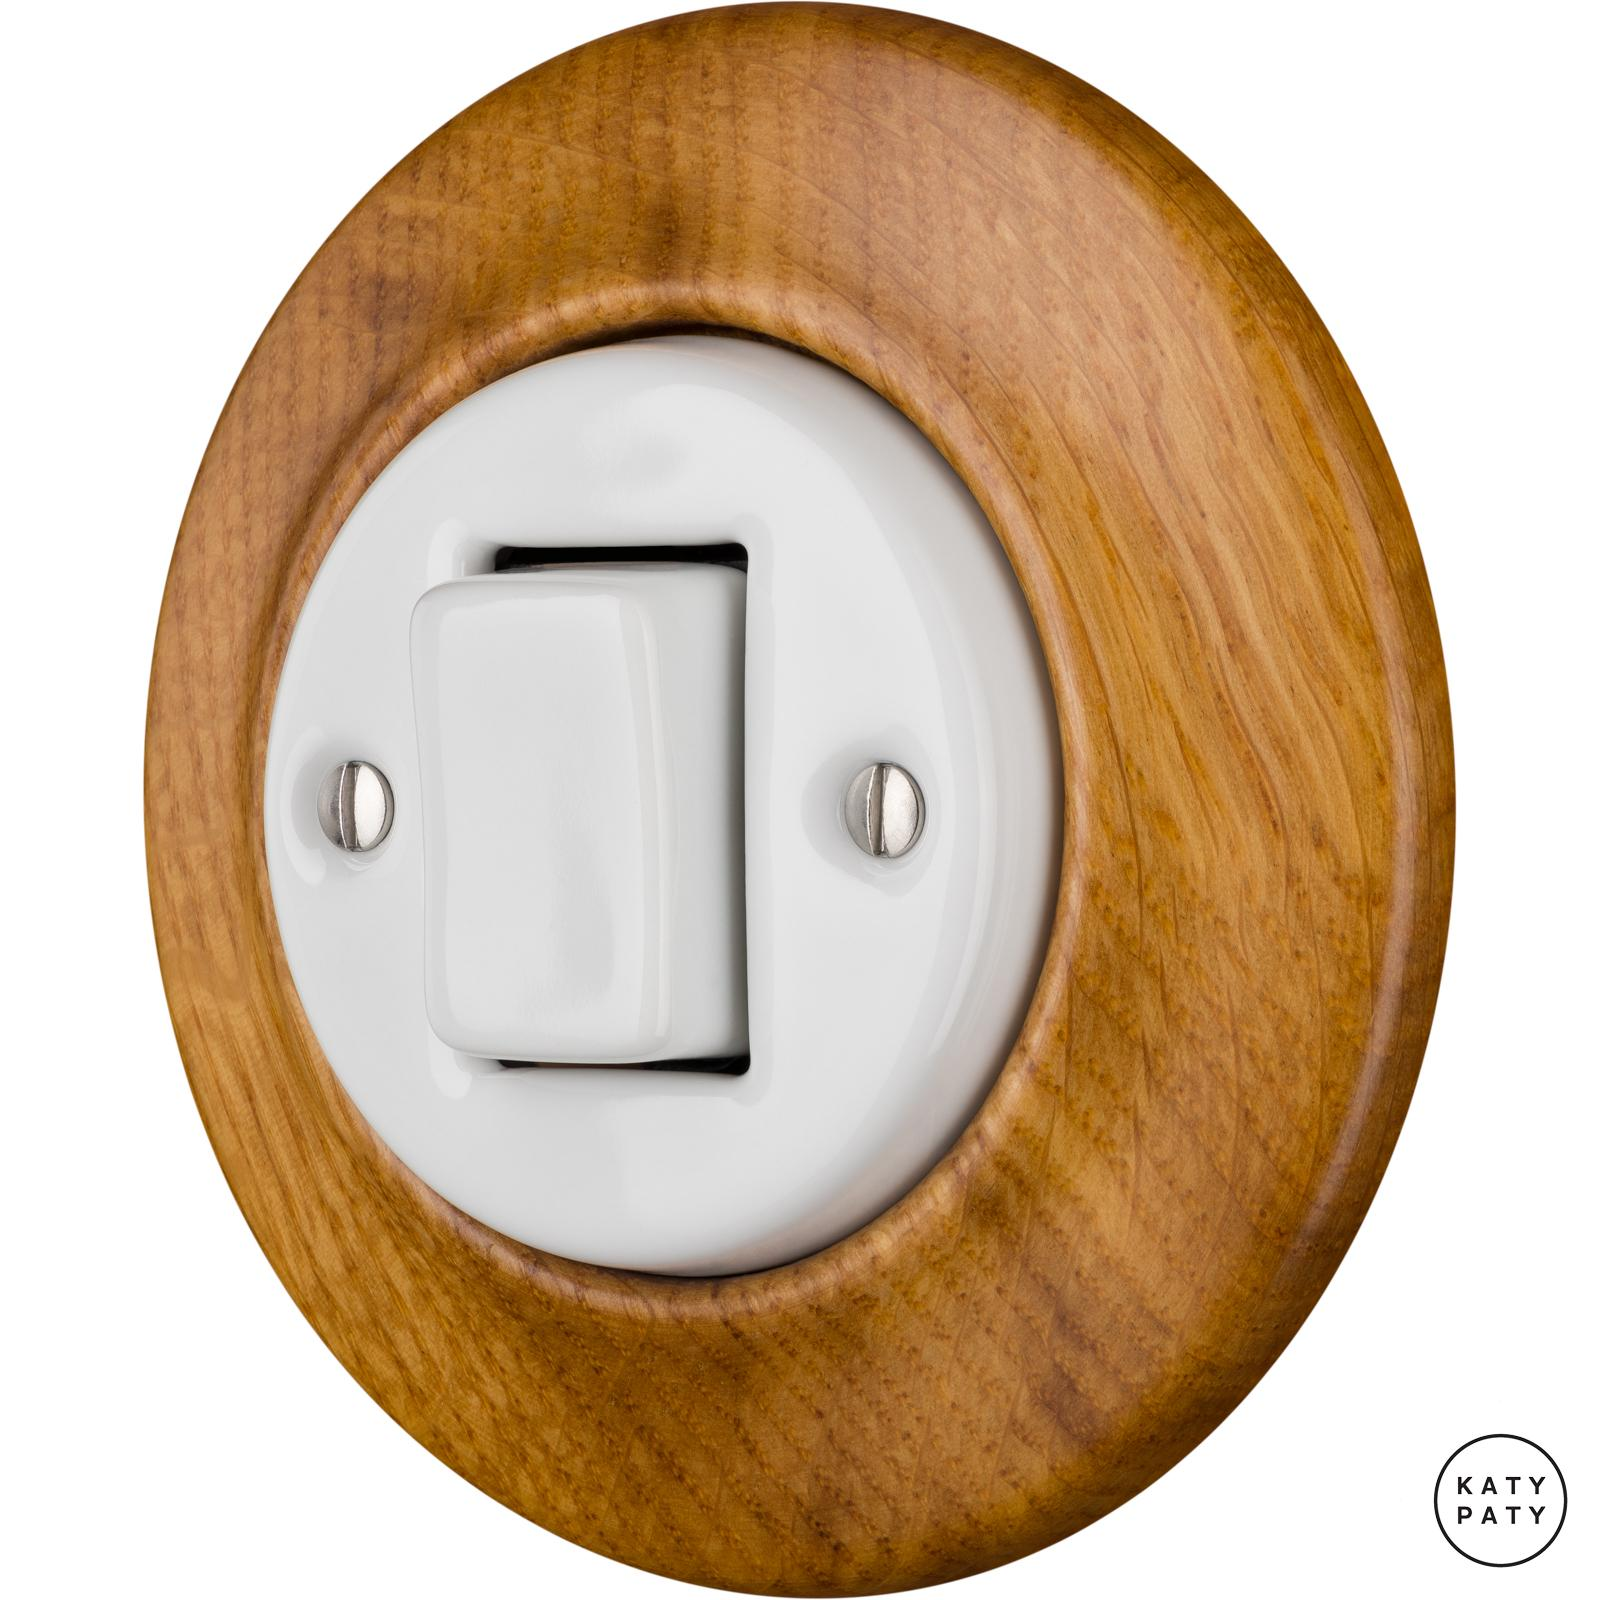 Porcelain switches - 1 gang - FAT ()  - ROBUS | Katy Paty